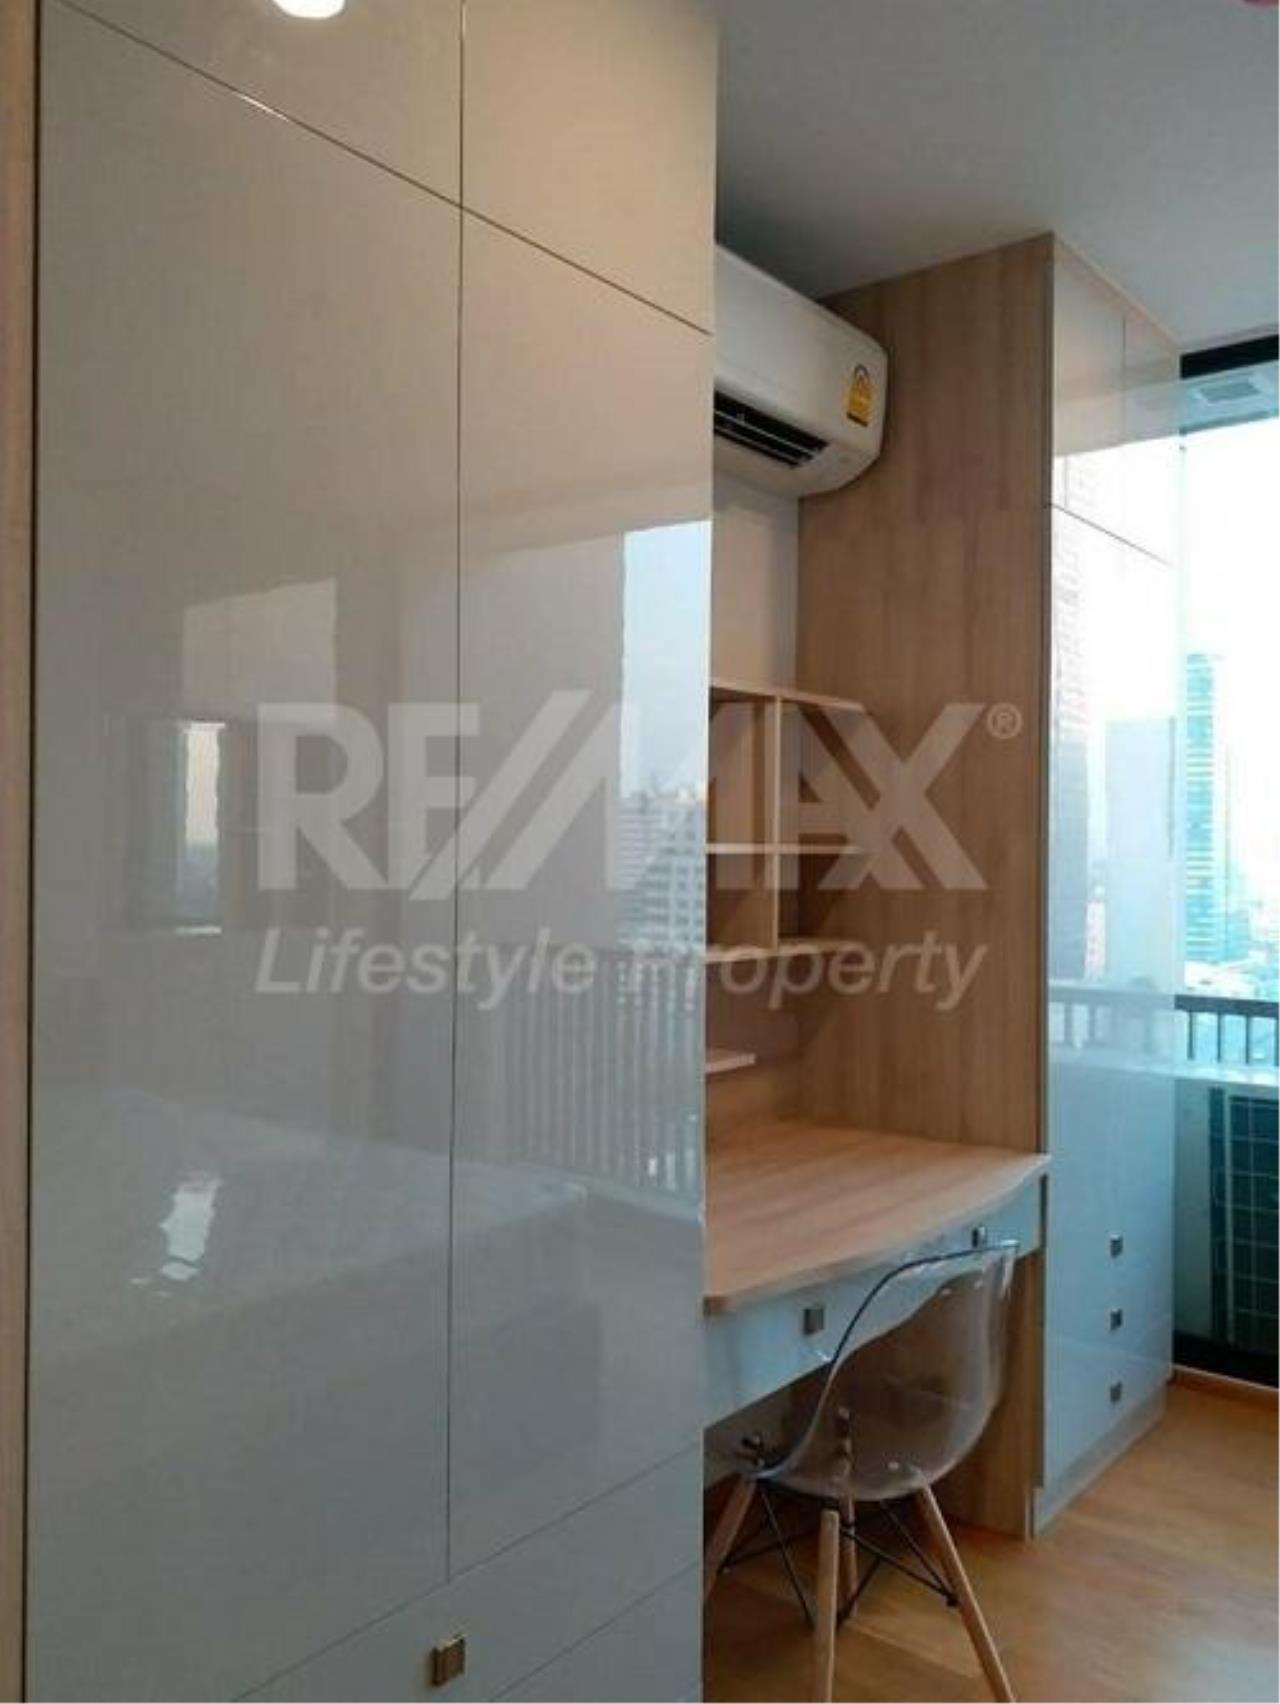 RE/MAX LifeStyle Property Agency's Noble Revo Silom 4